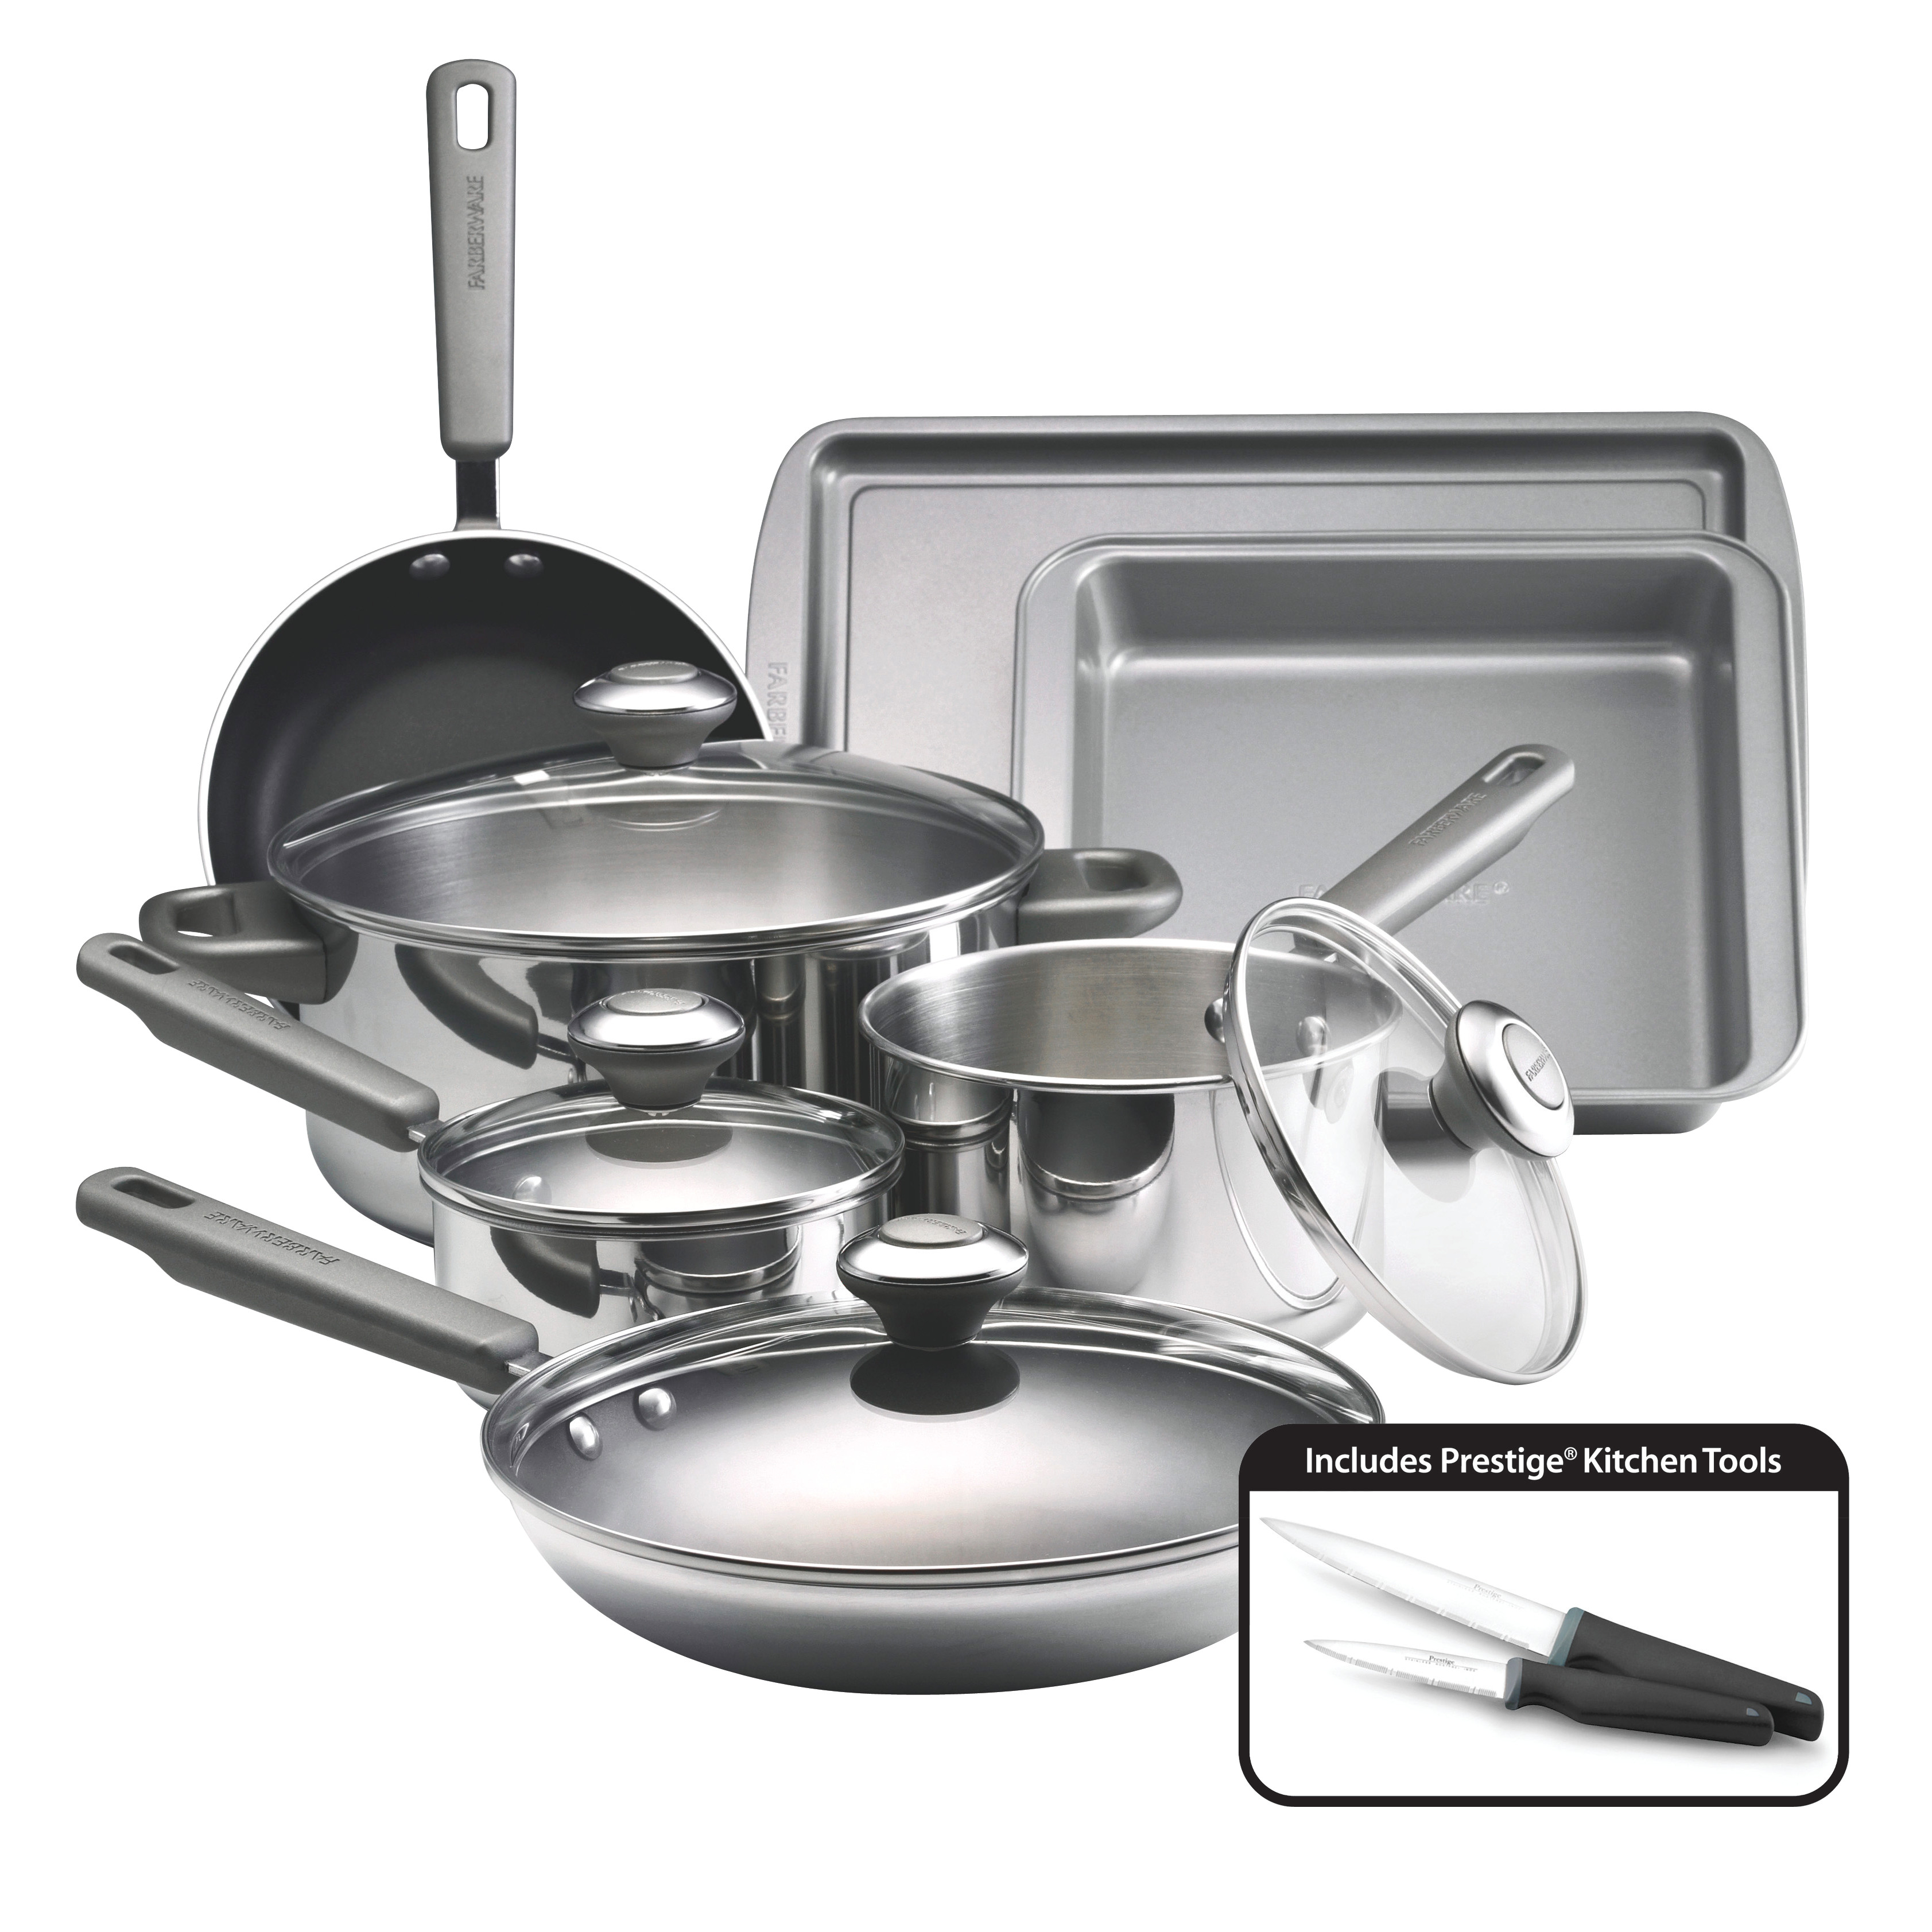 Farberware Complements Stainless Steel and Nonstick 13-Piece Cookware Set, Silver